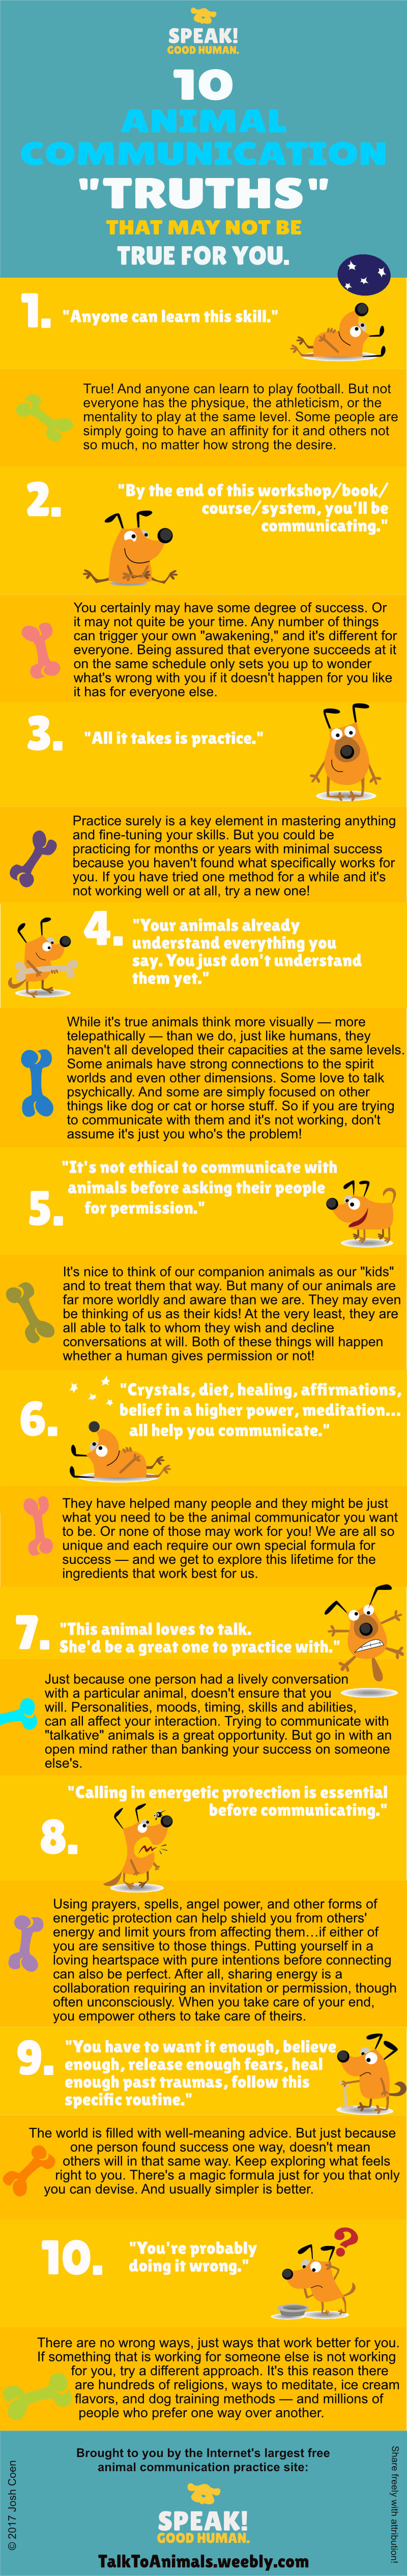 Infographic on 10 animal communication truths that may not be true for you